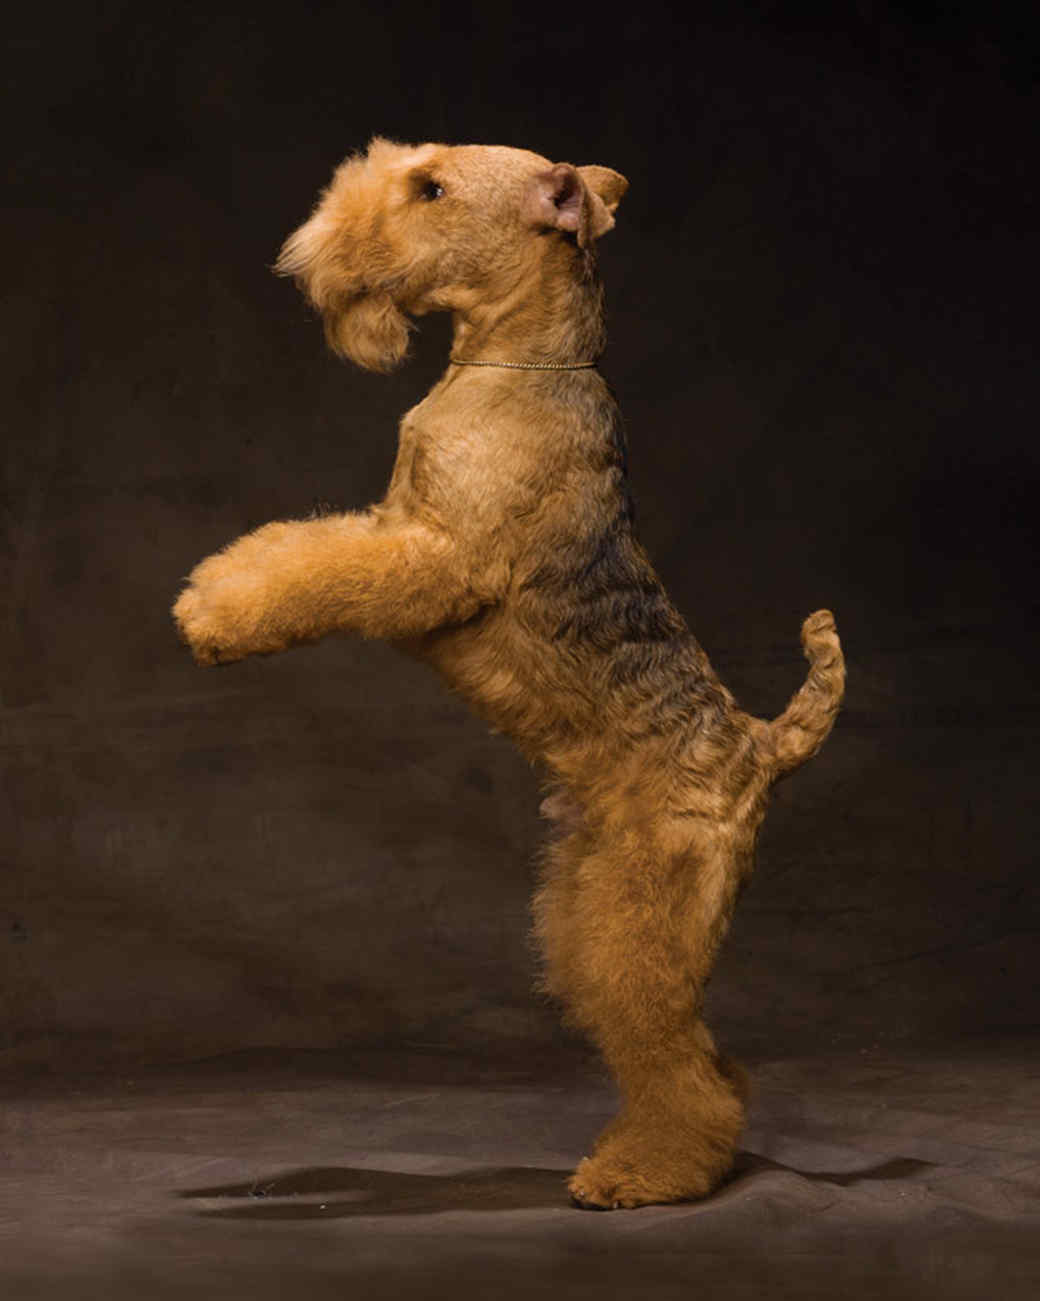 md105724_1110_lakelandterrier_00017.jpg